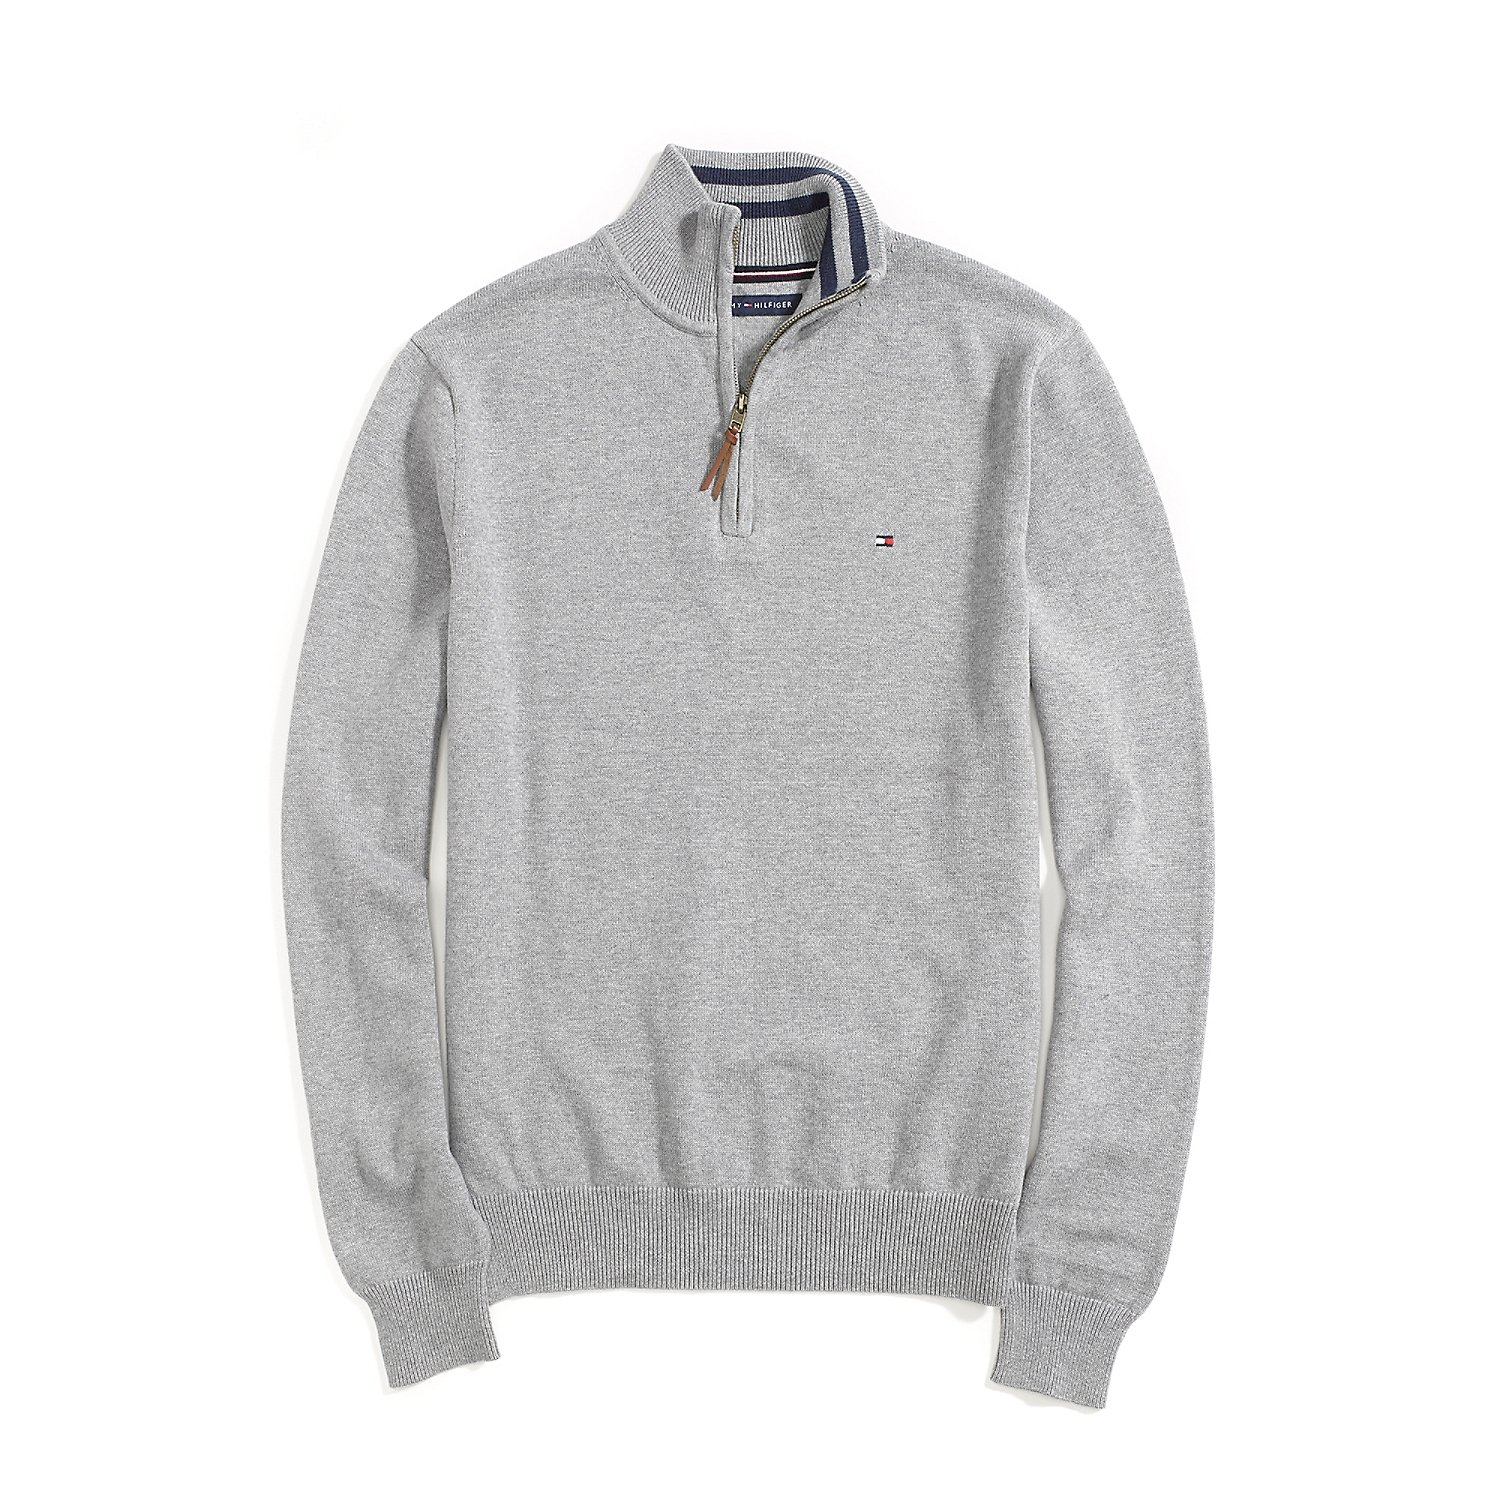 Tommy Hilfiger Mens 1//2 Zip Knitted Sweater